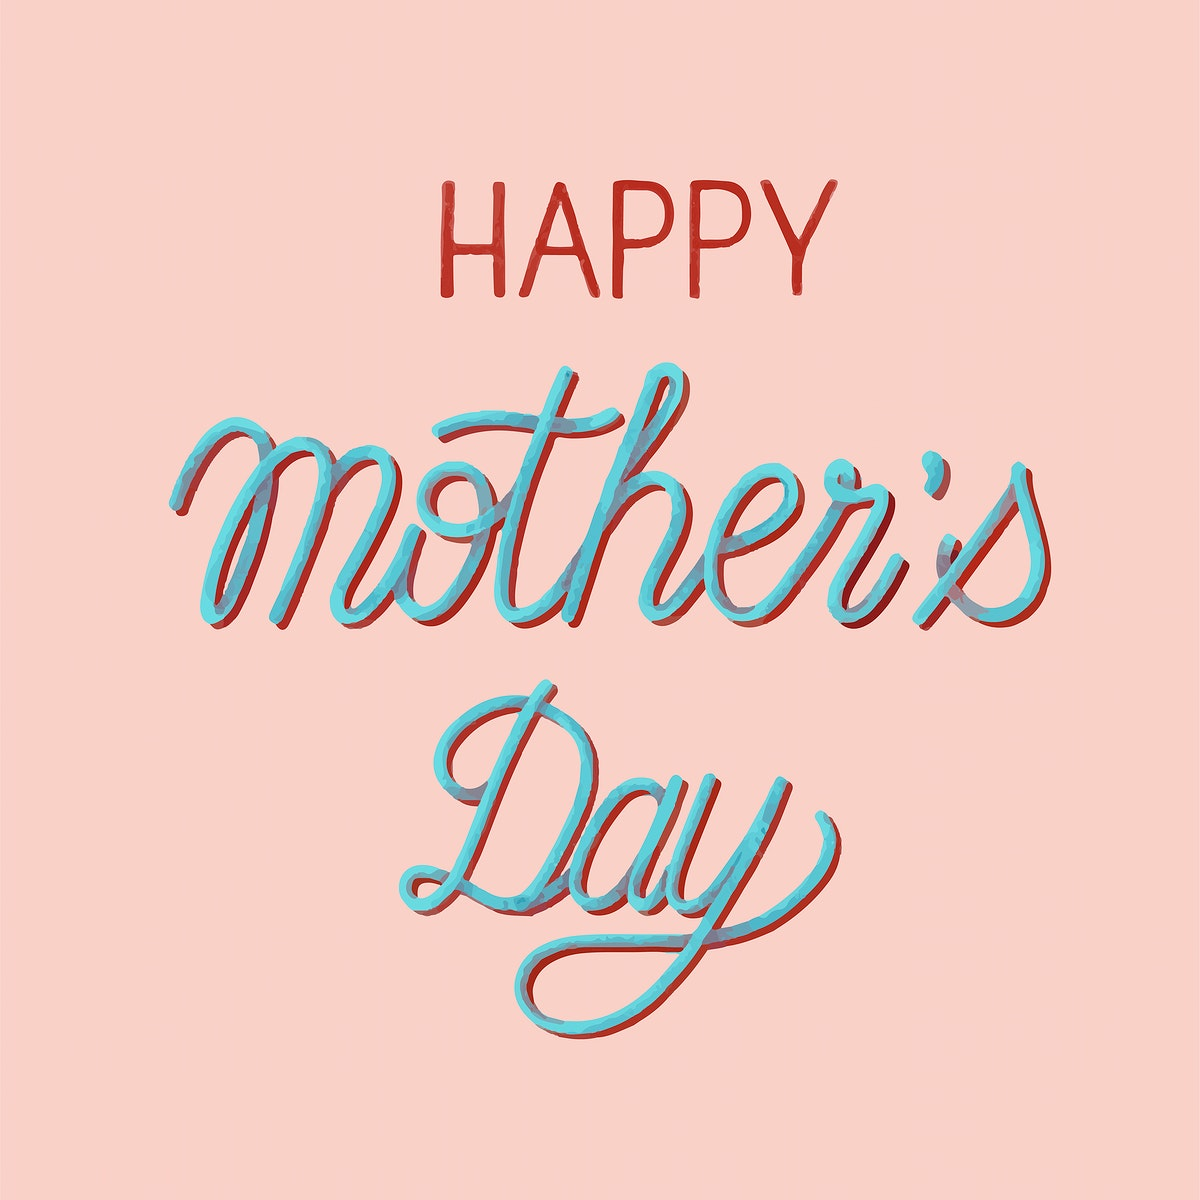 Handwritten style of Happy Mother's Day typography